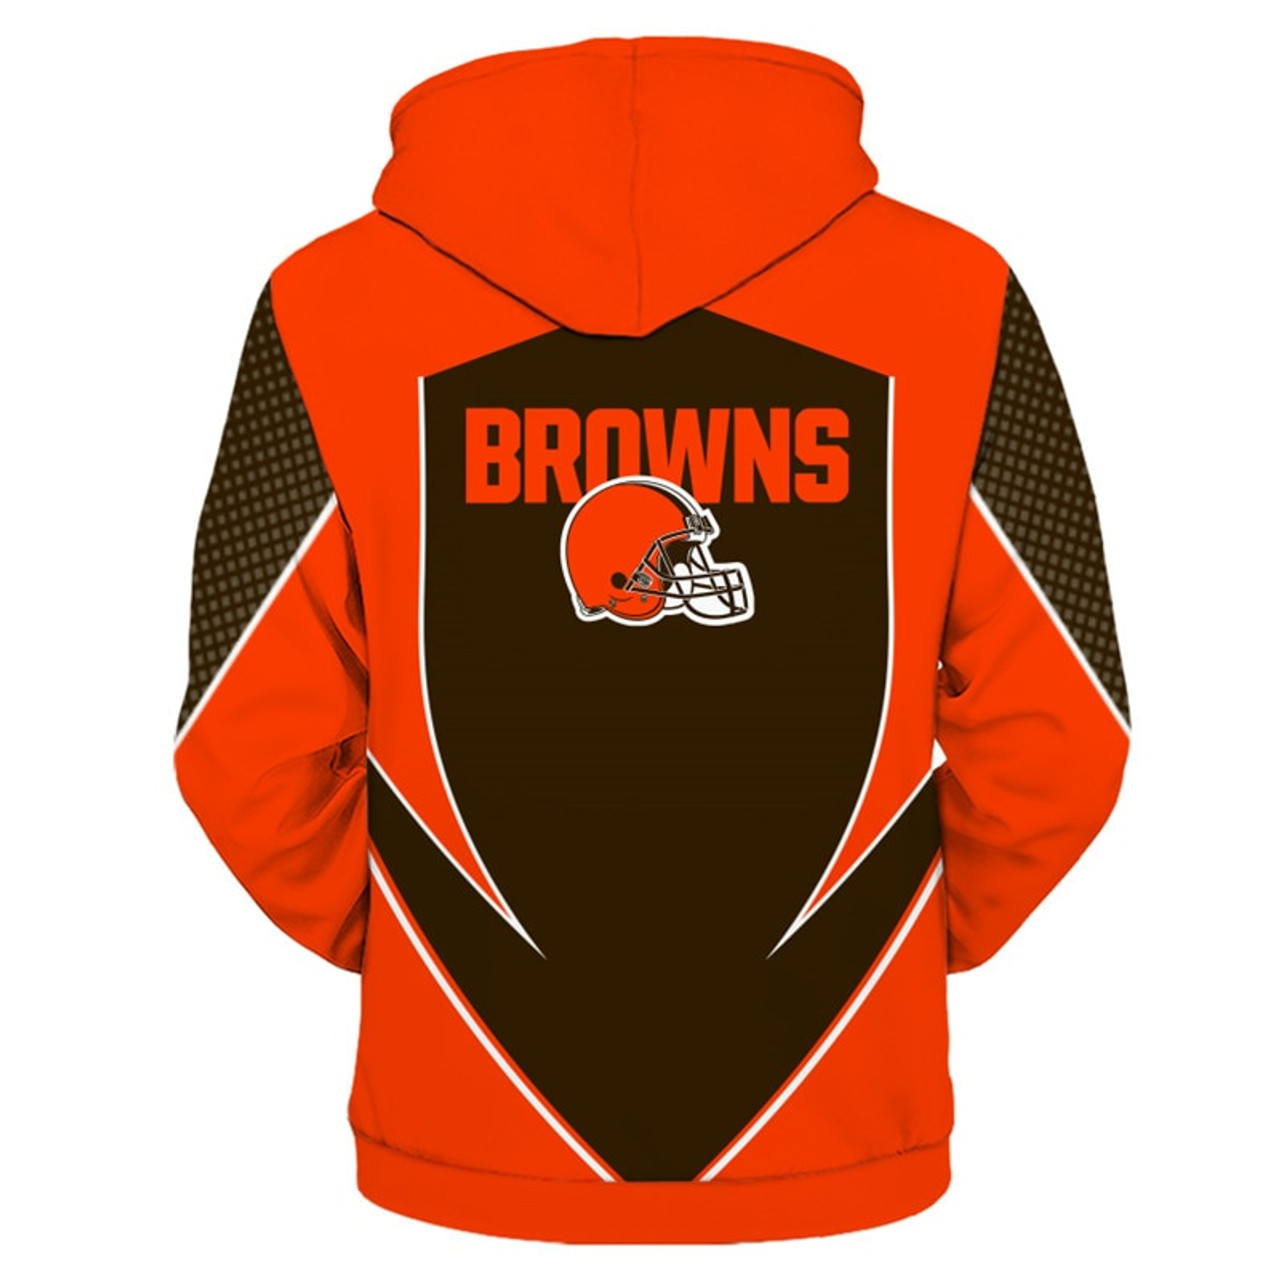 save off 045f5 b1030 **(OFFICIAL-N.F.L.CLEVELAND-BROWNS-TEAM-ZIPPERED-HOODIES/NEW-CUSTOM-3D-GRAPHIC-PRINTED-DOUBLE-SIDED-DESIGNED/ALL-OVER-OFFICIAL-BROWNS-LOGOS  & ...